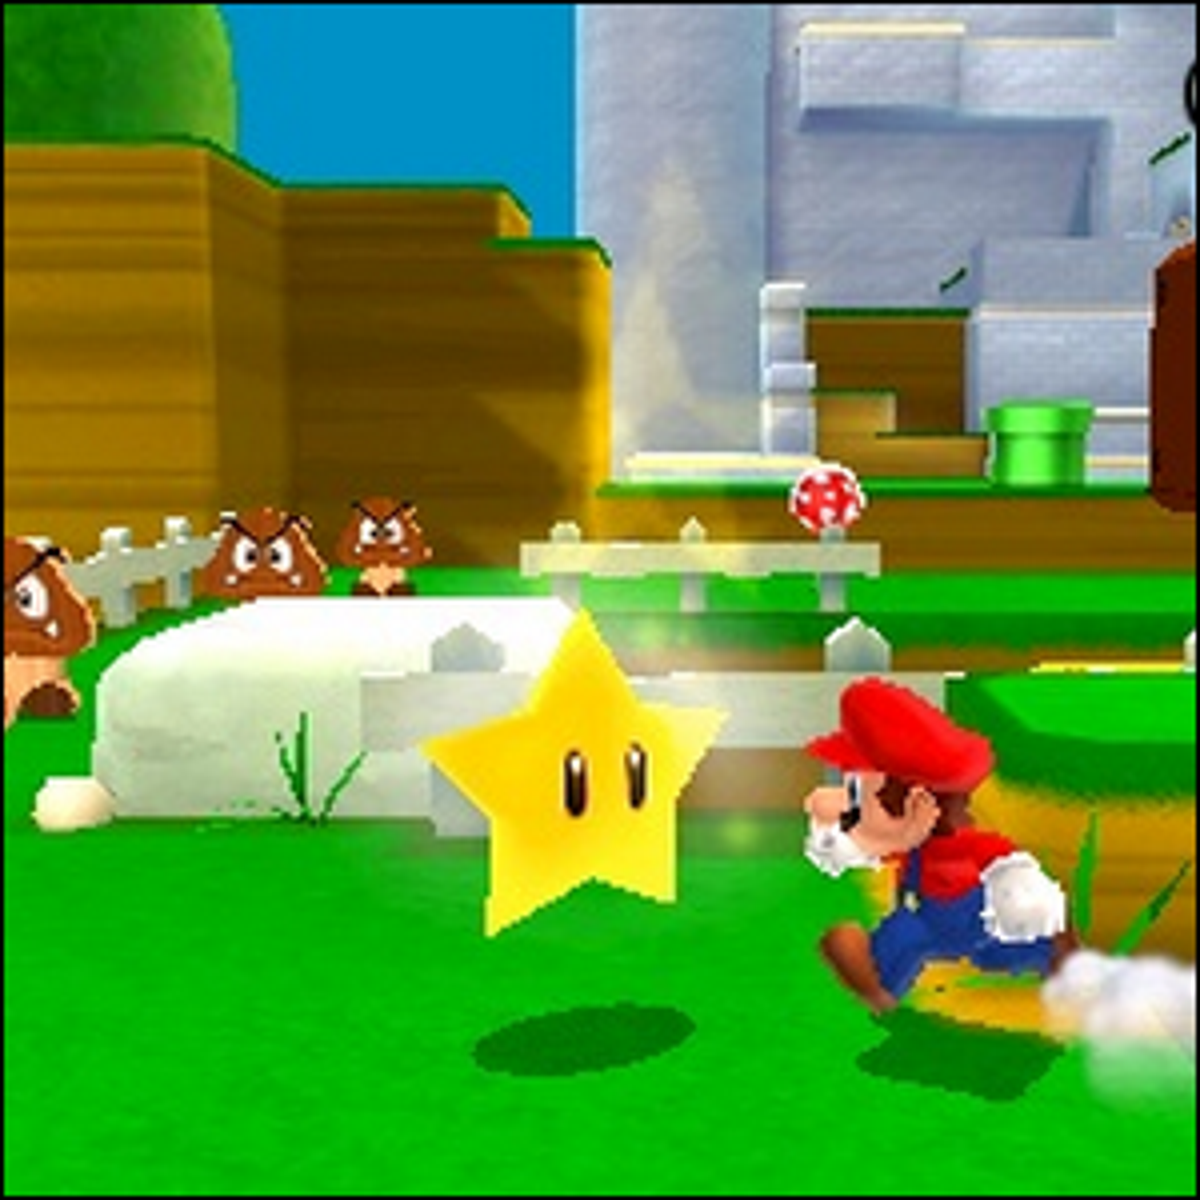 Mario running to get an Invincibility Star.